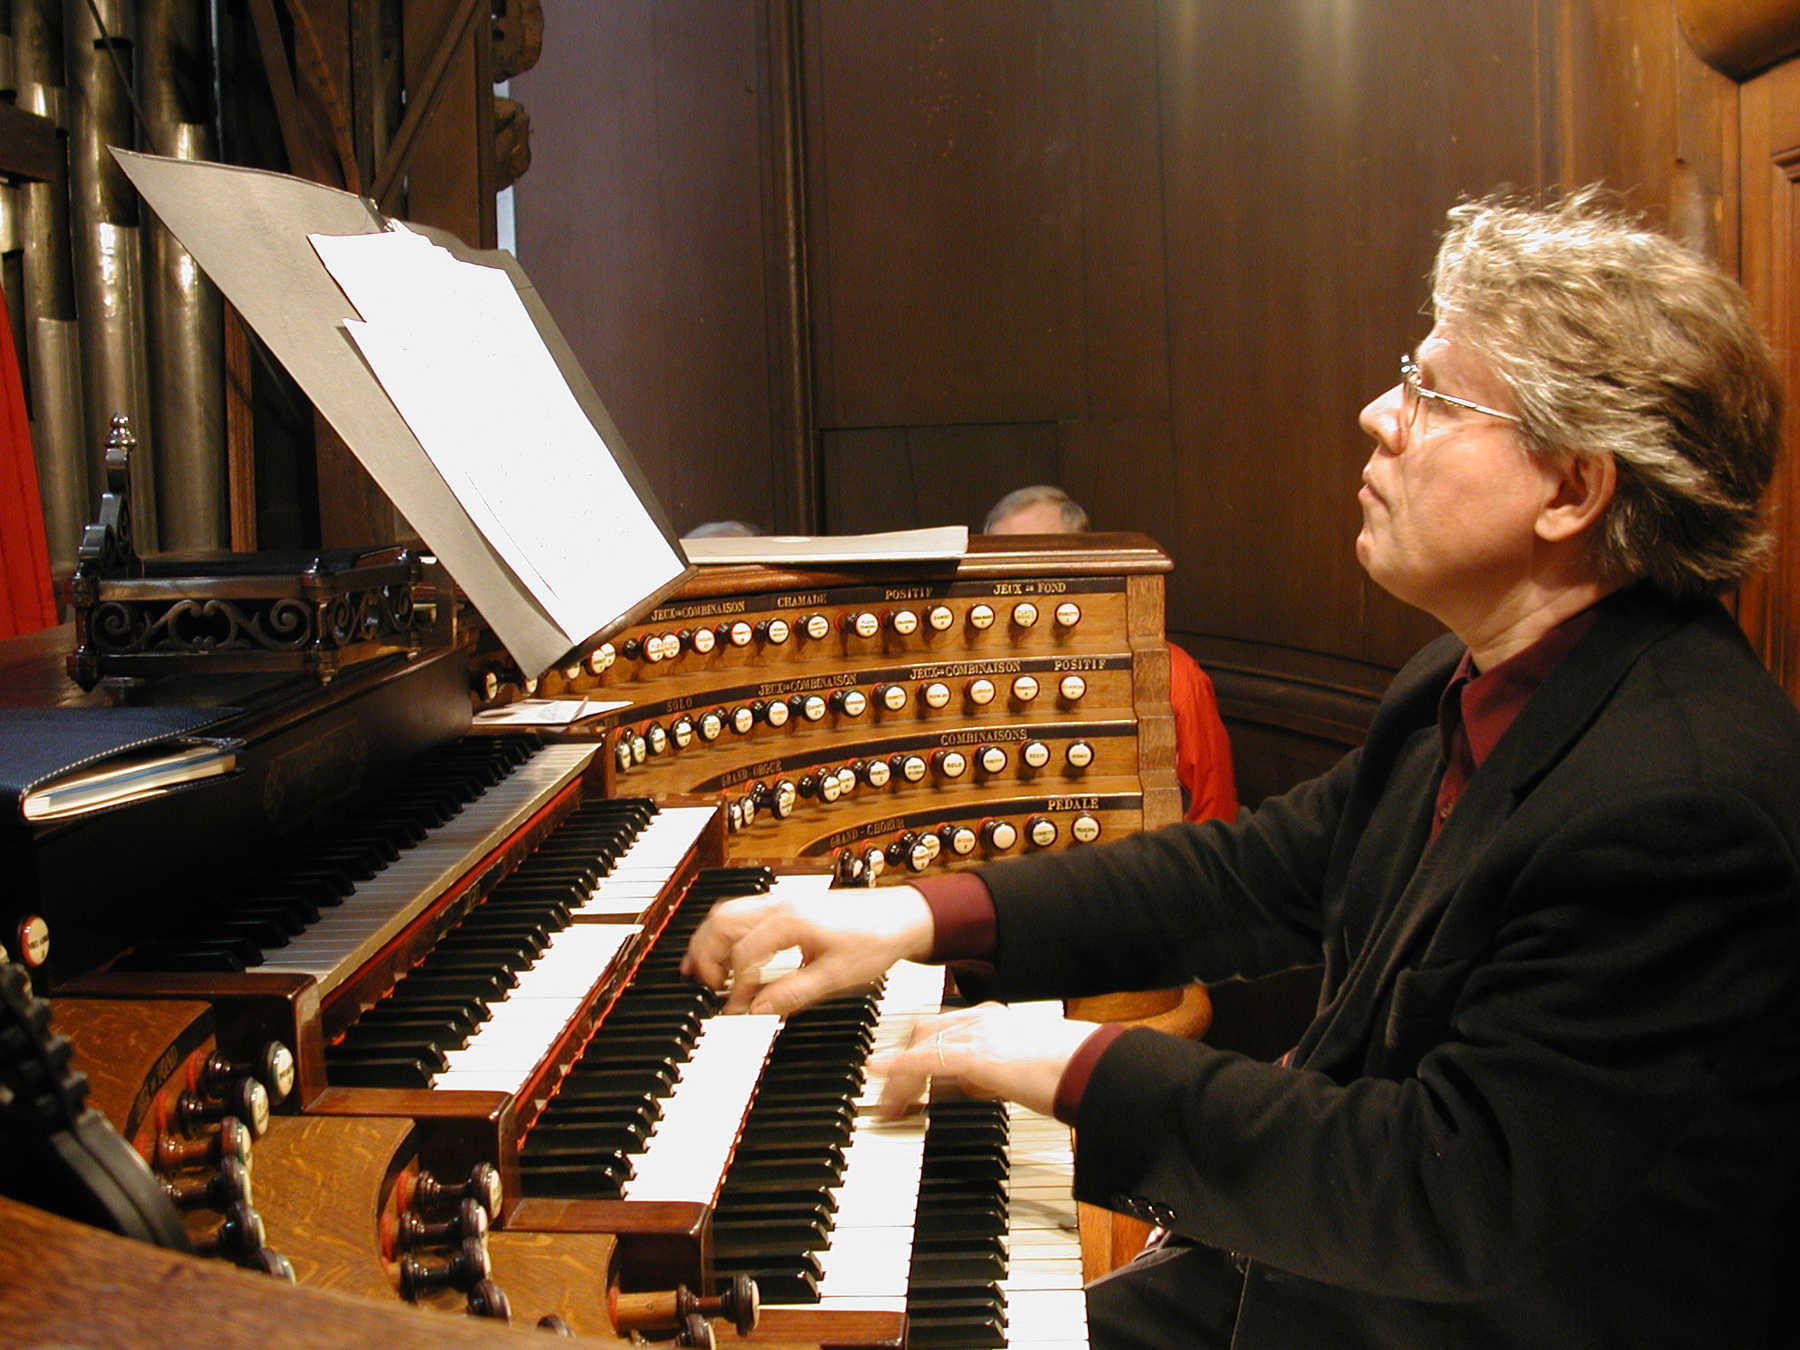 Organist, St. Sulpice Church, Paris, France